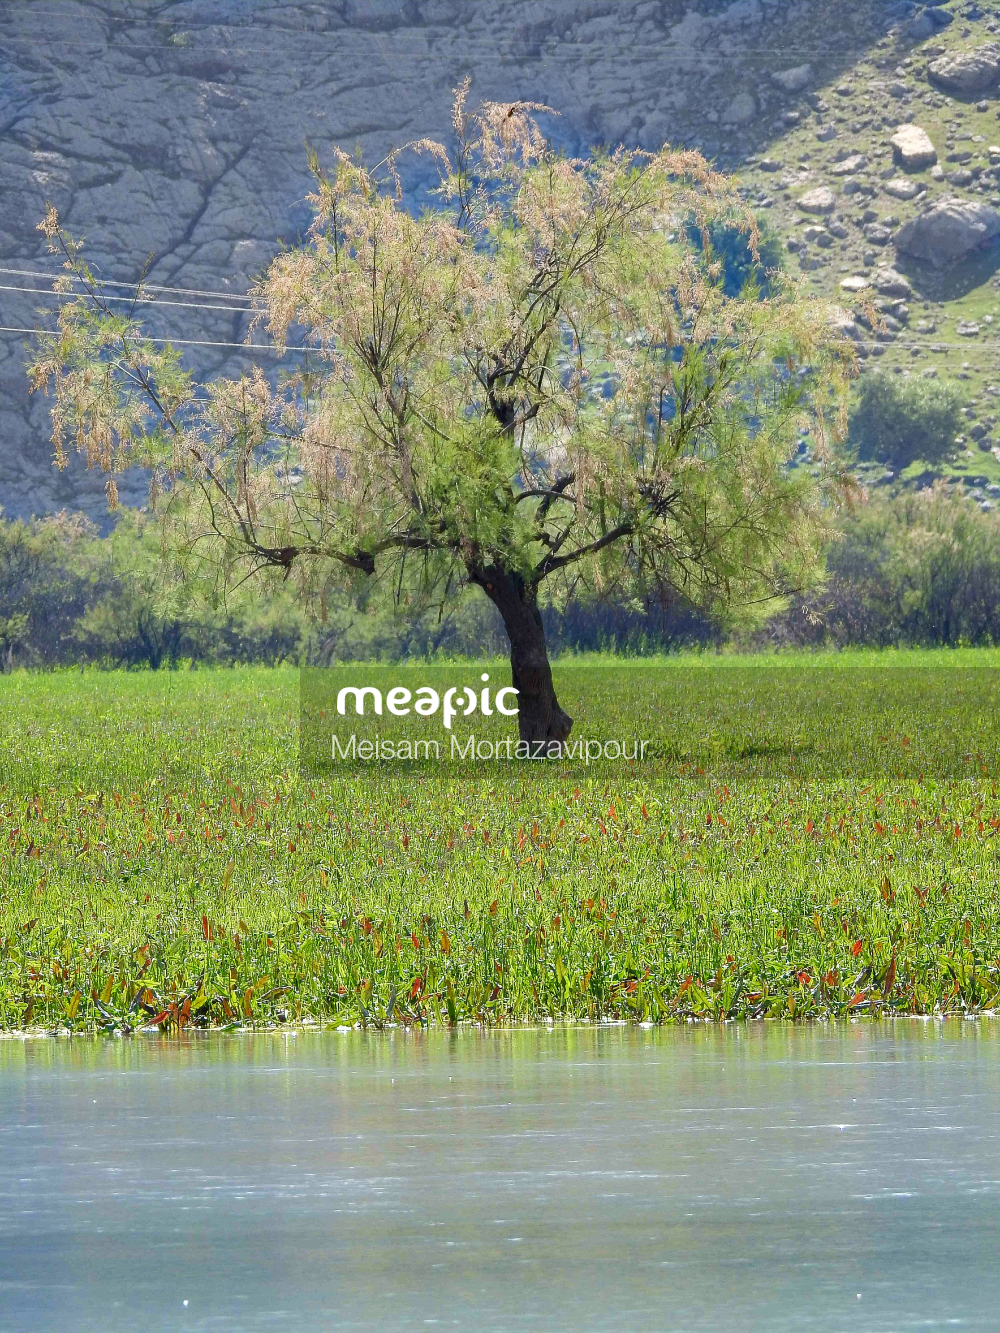 Body Of Water Surrounded By Trees Stock Photo · Meapic